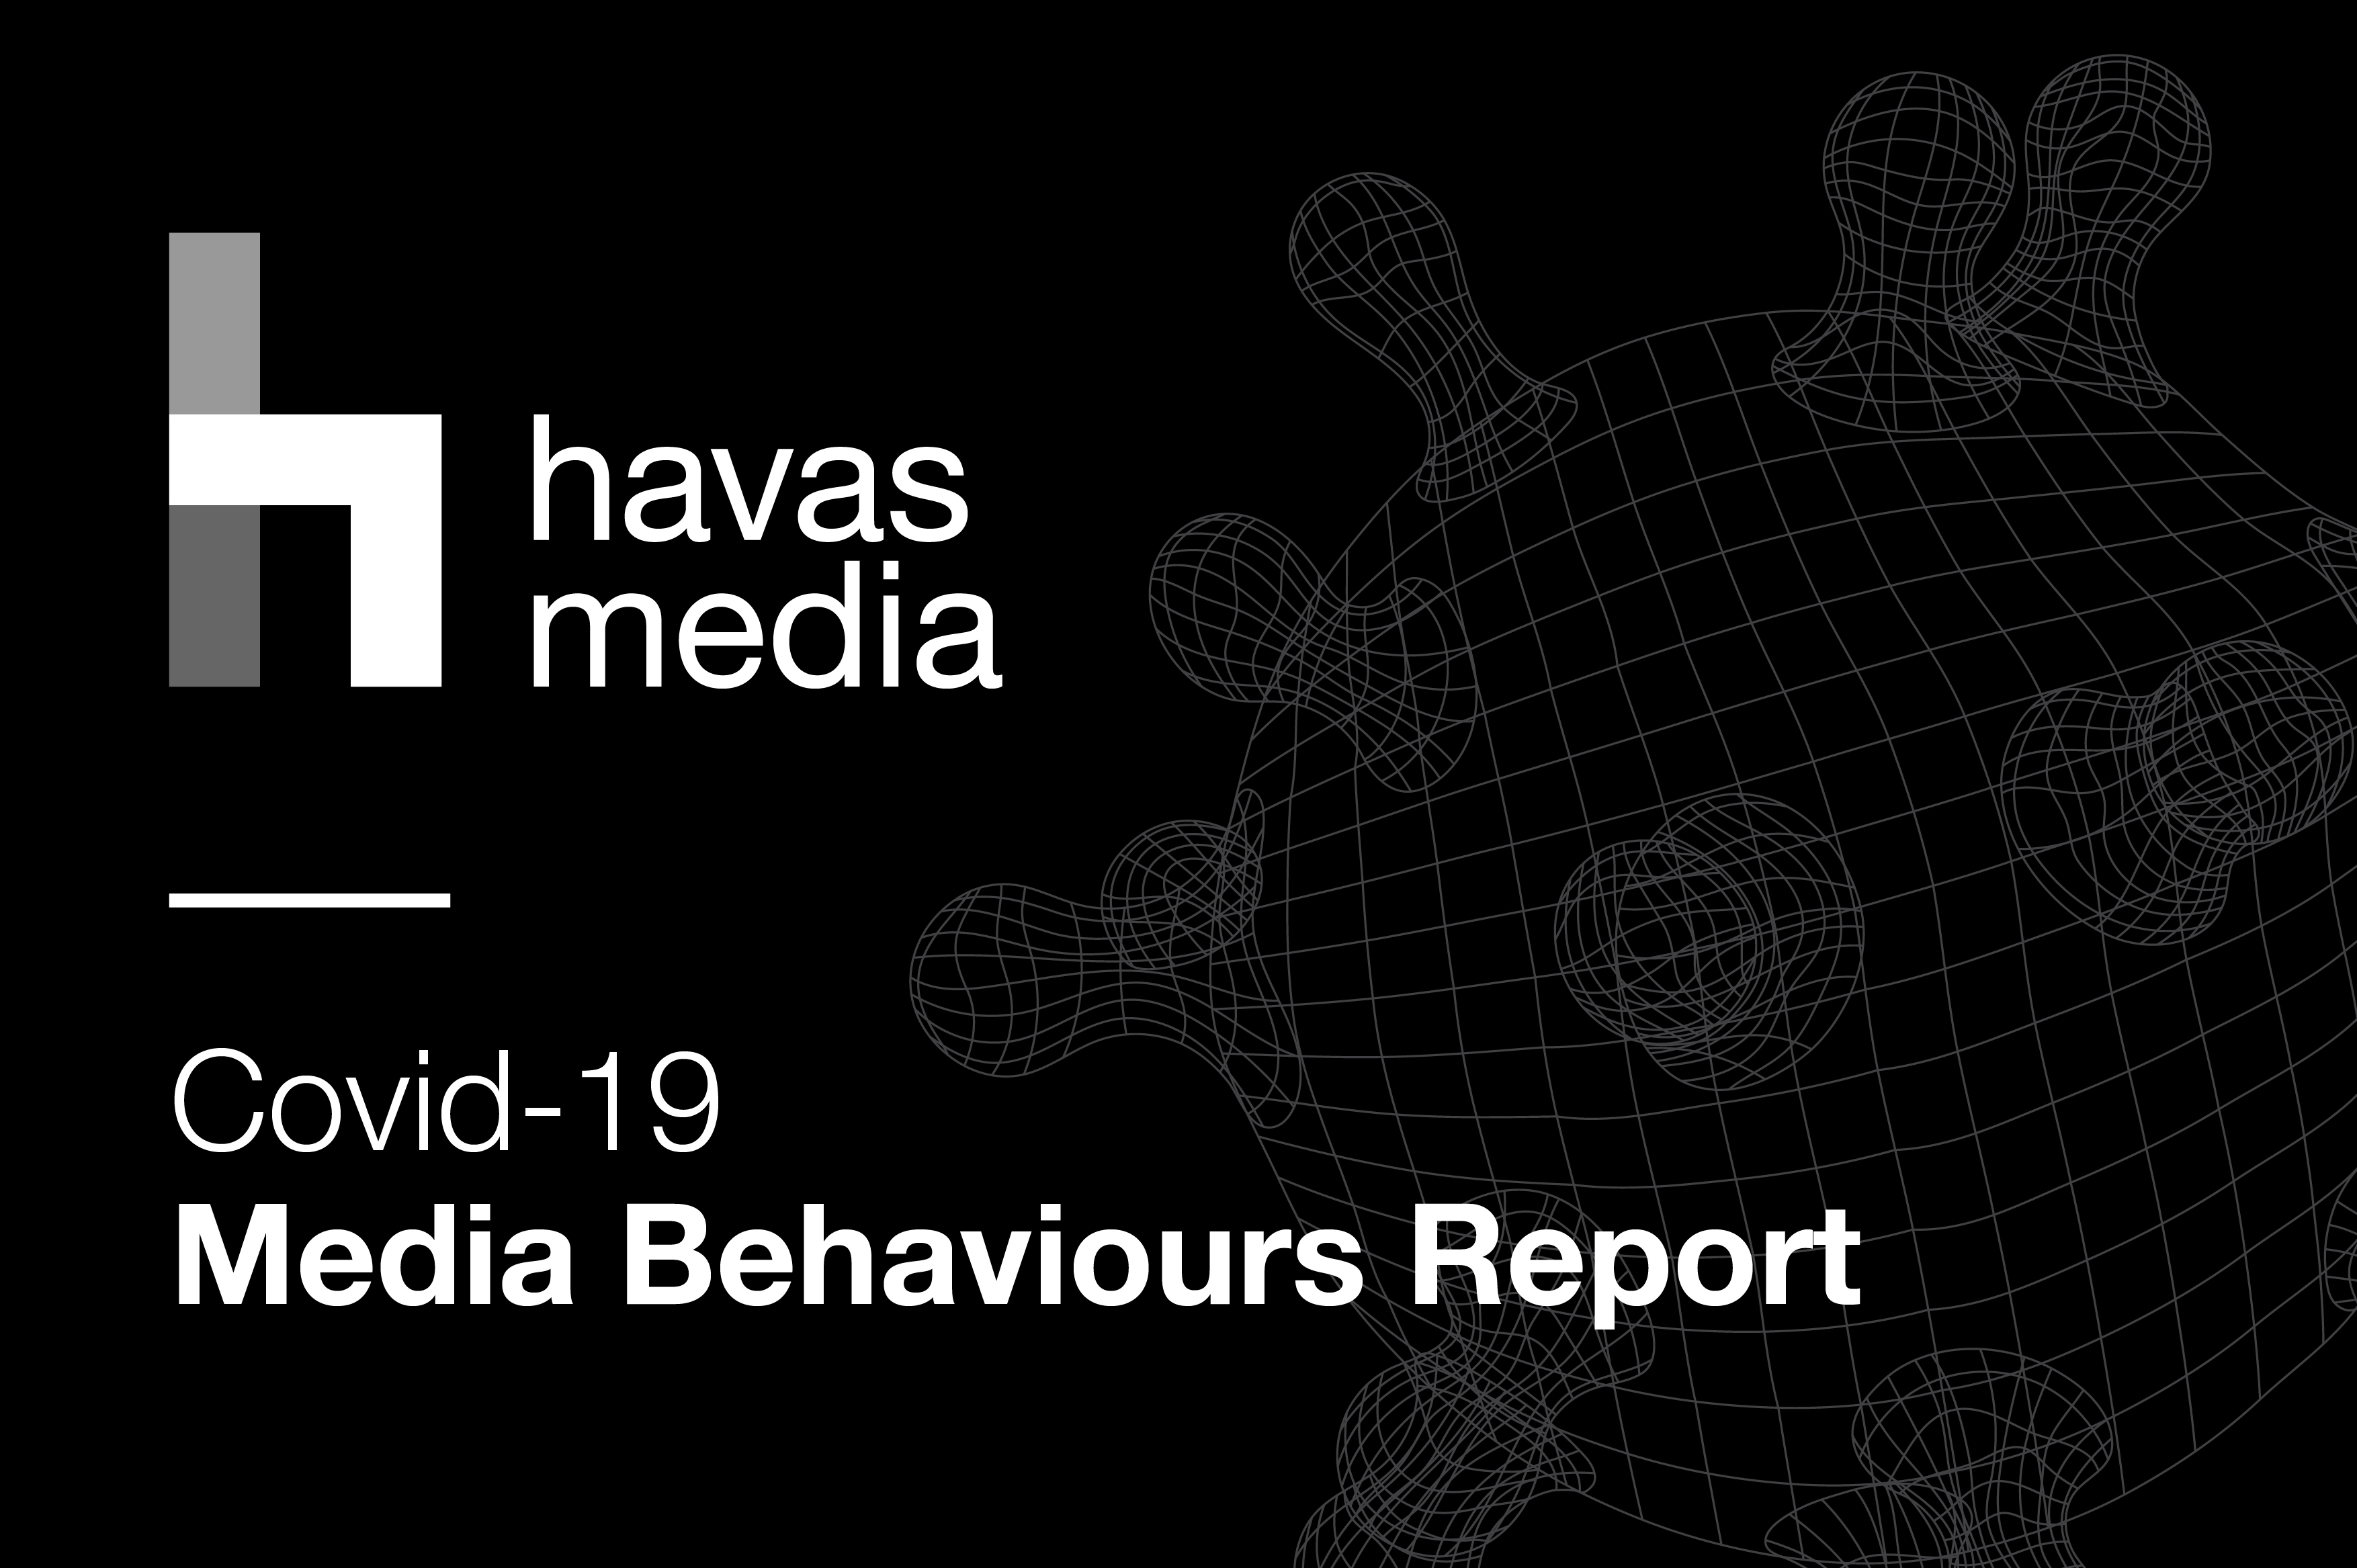 Havas Media Group Reveals Swing to Trusted Media Brands and Live TV in Response to Covid-19